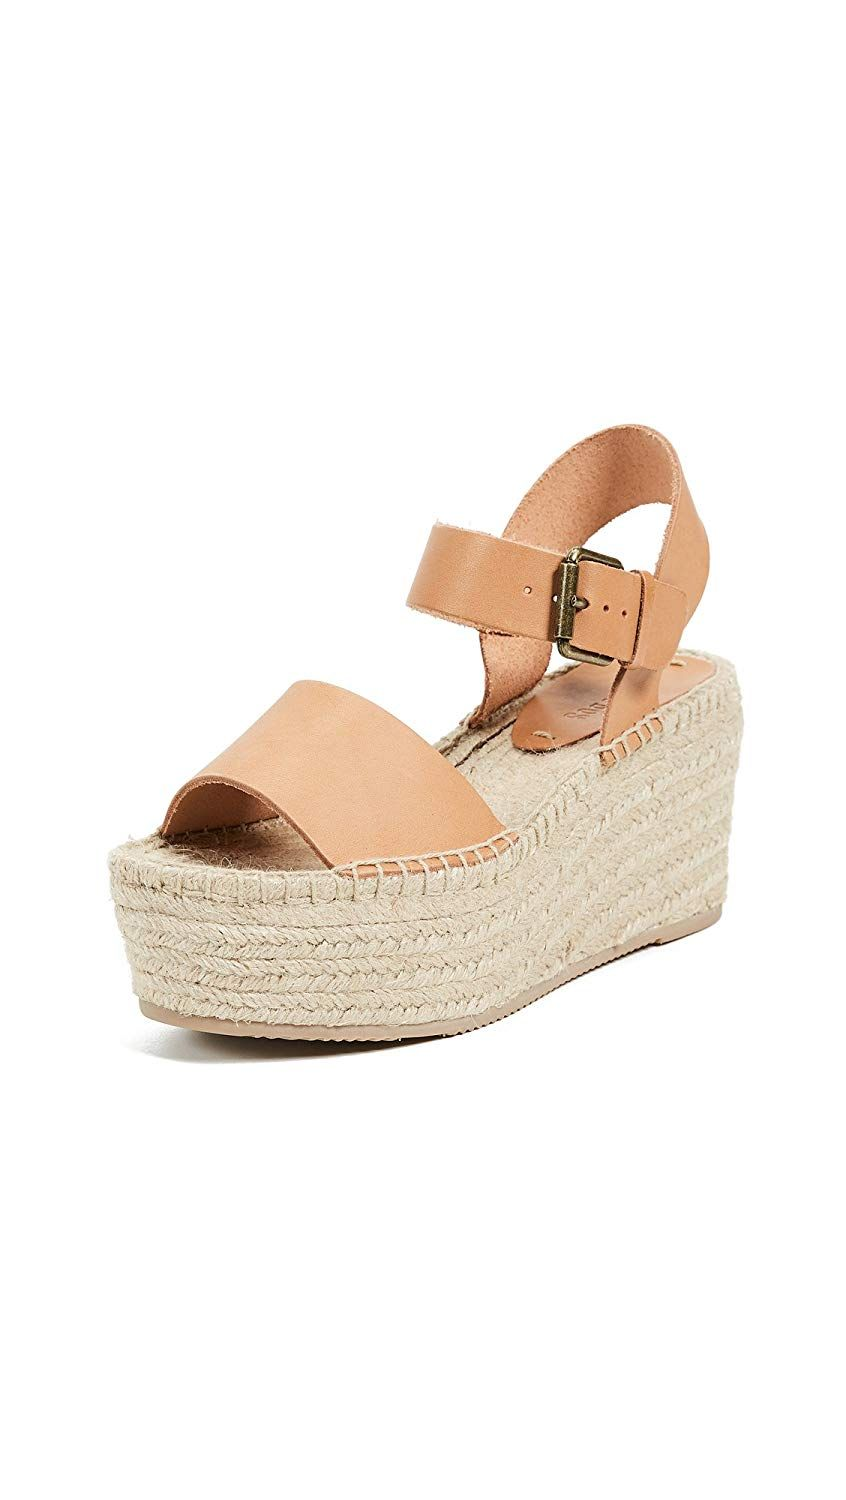 86995a1a2461f Soludos Women s Minorca High Platform Espadrille Wedge Sandal. High Platform  Leather Wedge. Women s Shoes